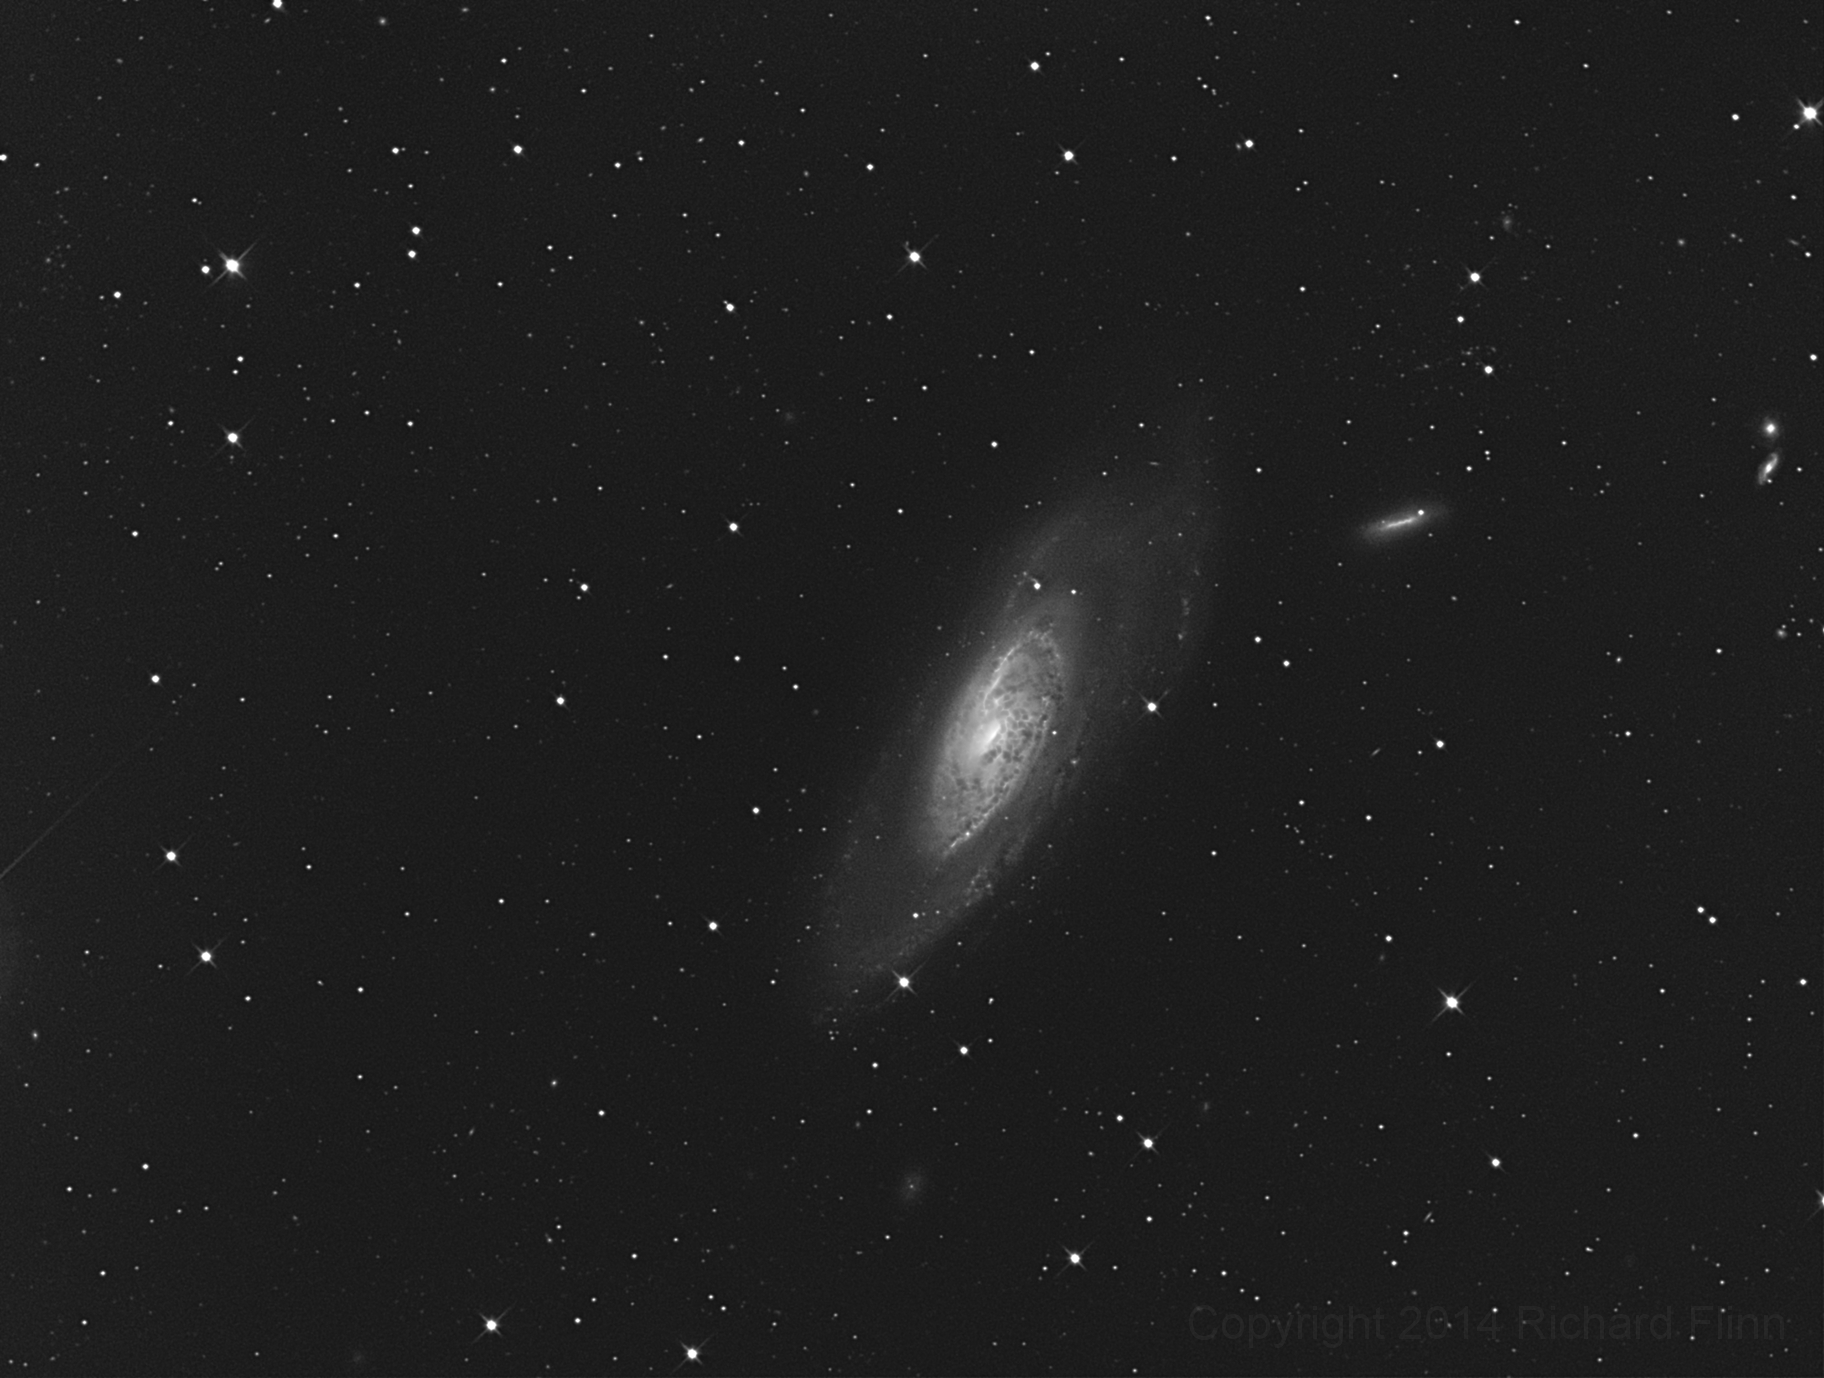 M106 (NGC 4258) - a spiral galaxy in the constellation Canes Venatici